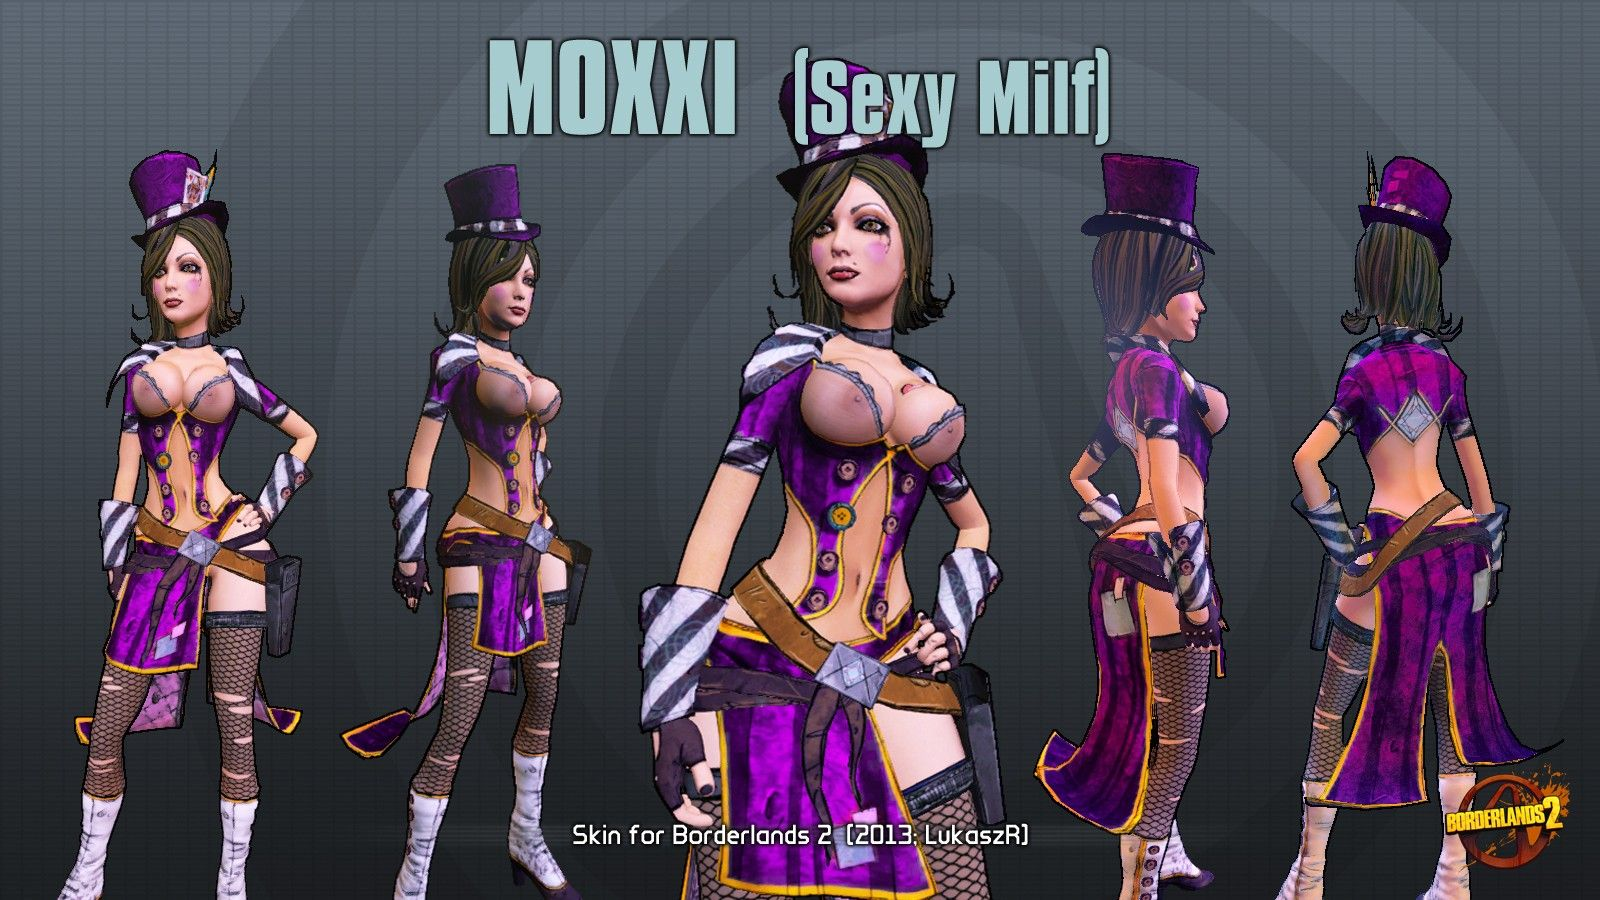 Nude Mad Moxxi Already Done For Borderlands 2 Digitalero Offline